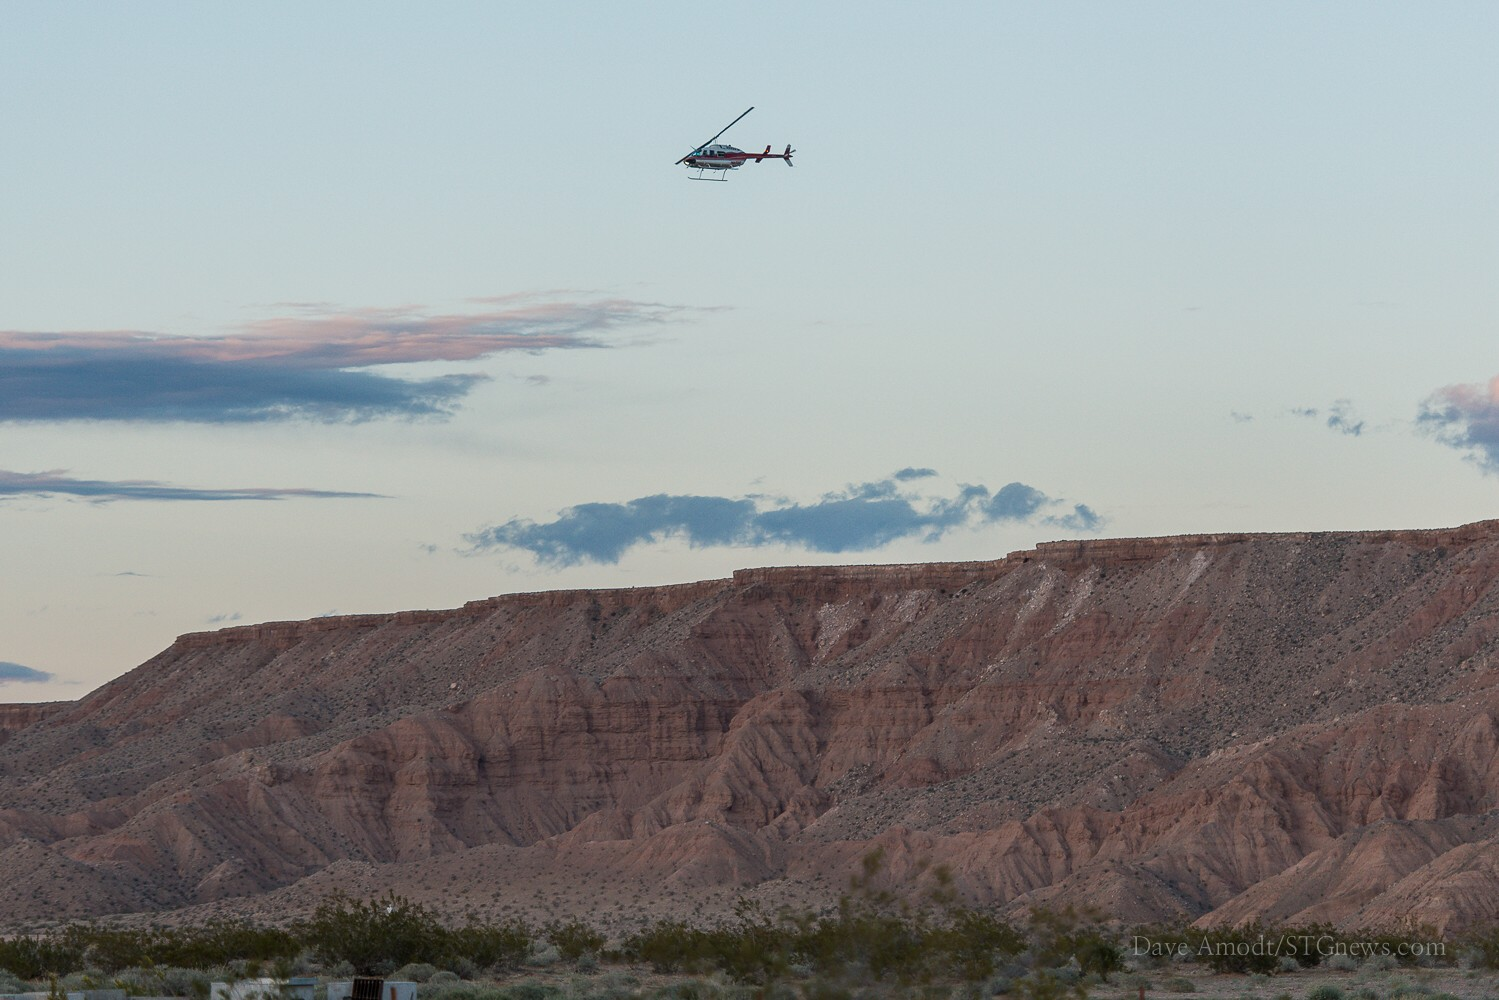 A helicopter overhead. Helicopter pilots are among the people privately contracted by the BLM to help gather Bundy's cattle, Clark County, Nev., April 1, 2014 | Photo by Dave Amodt, St. George News